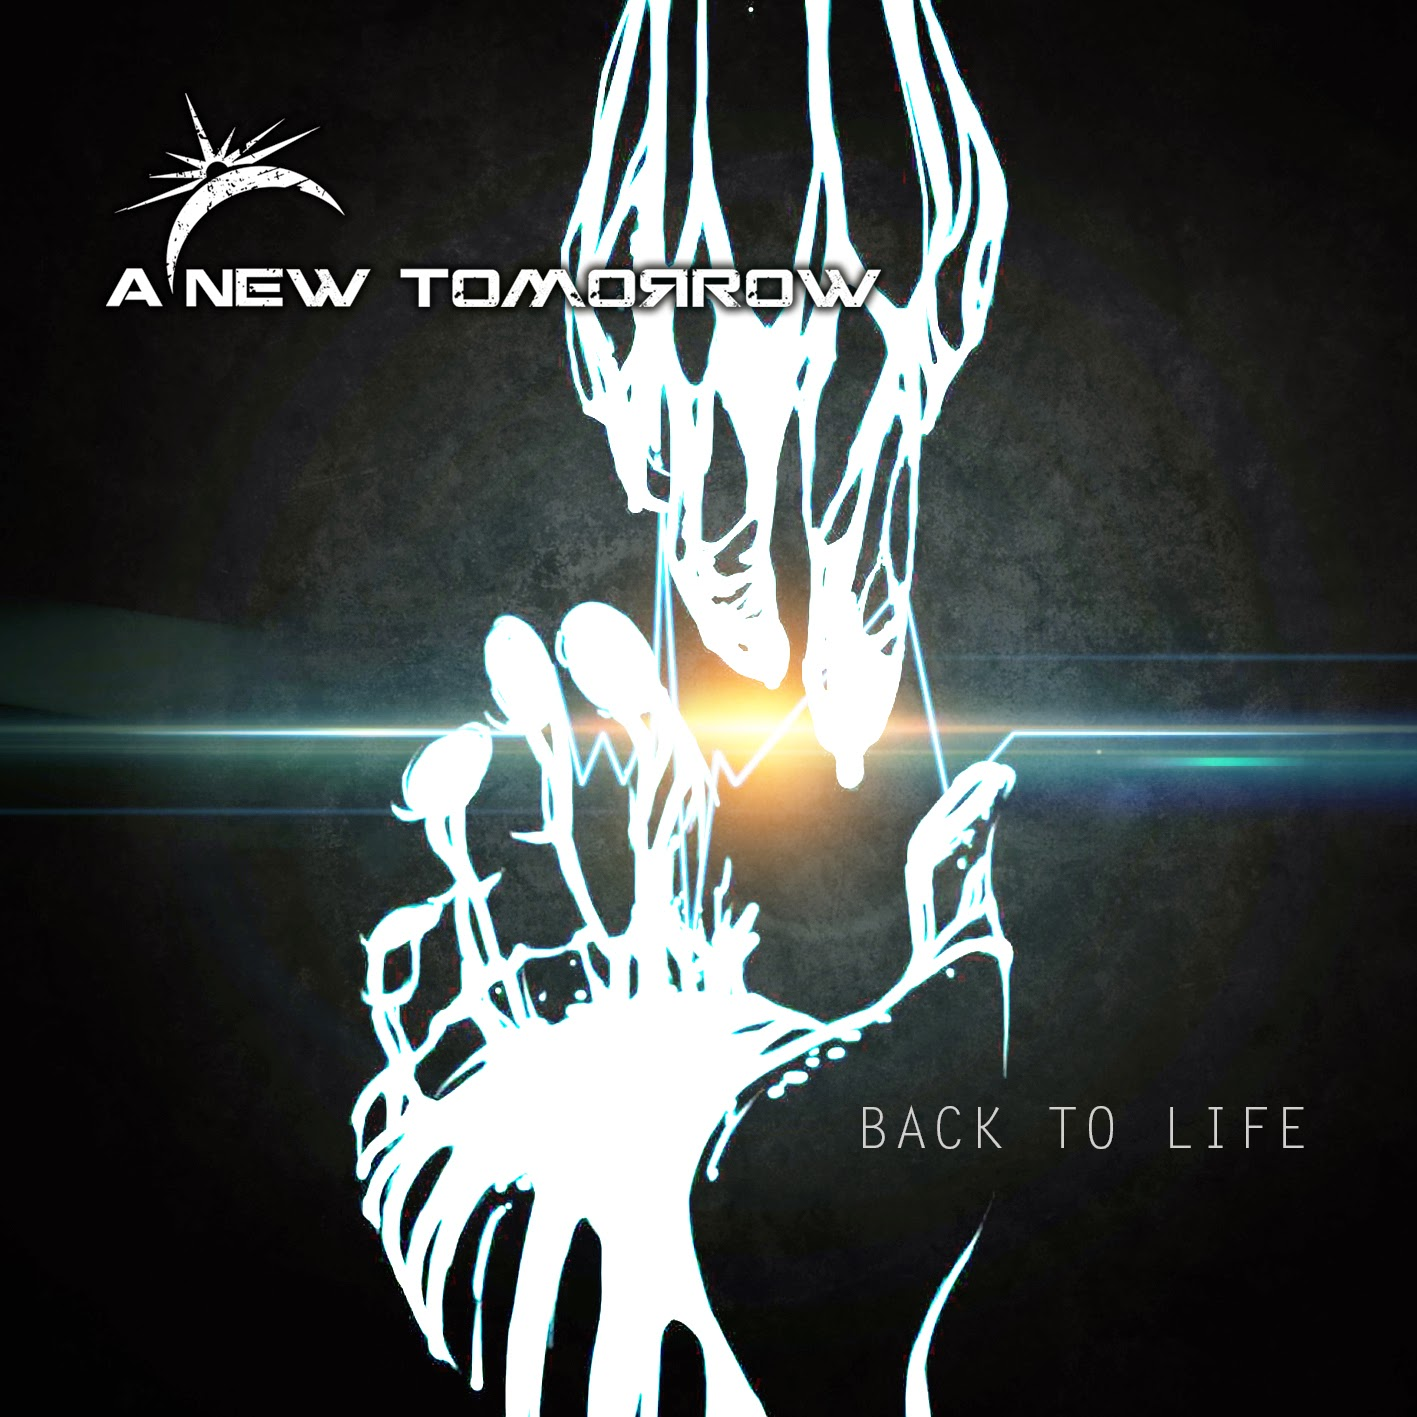 http://www.anewtomorrowband.com/